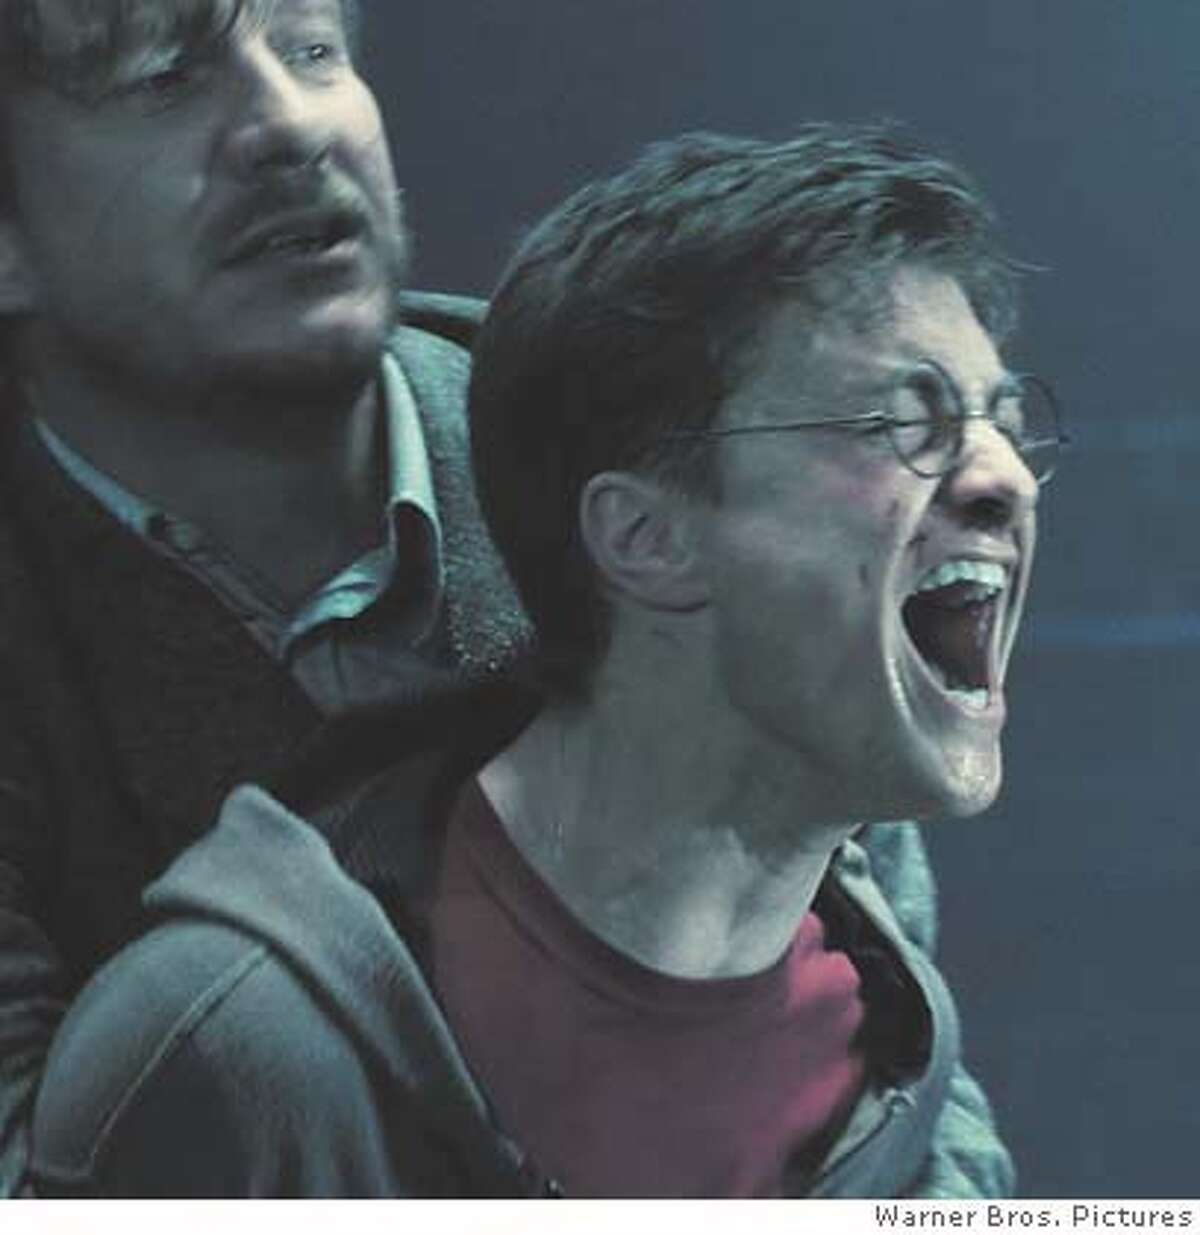 """DAVID THEWLIS as Remus Lupin and DANIEL RADCLIFFE as Harry Potter in Warner Bros. Pictures' fantasy """"Harry Potter and the Order of the Phoenix.""""PHOTOGRAPHS TO BE USED SOLELY FOR ADVERTISING, PROMOTION, PUBLICITY OR REVIEWS OF THIS SPECIFIC MOTION PICTURE AND TO REMAIN THE PROPERTY OF THE STUDIO. NOT FOR SALE OR REDISTRIBUTION. Ran on: 07-10-2007 Imelda Staunton plays the petty Dolores in Harry Potter and the Order of the Phoenix. Ran on: 07-29-2007 John Wayne in The Shootist: Give him a break."""